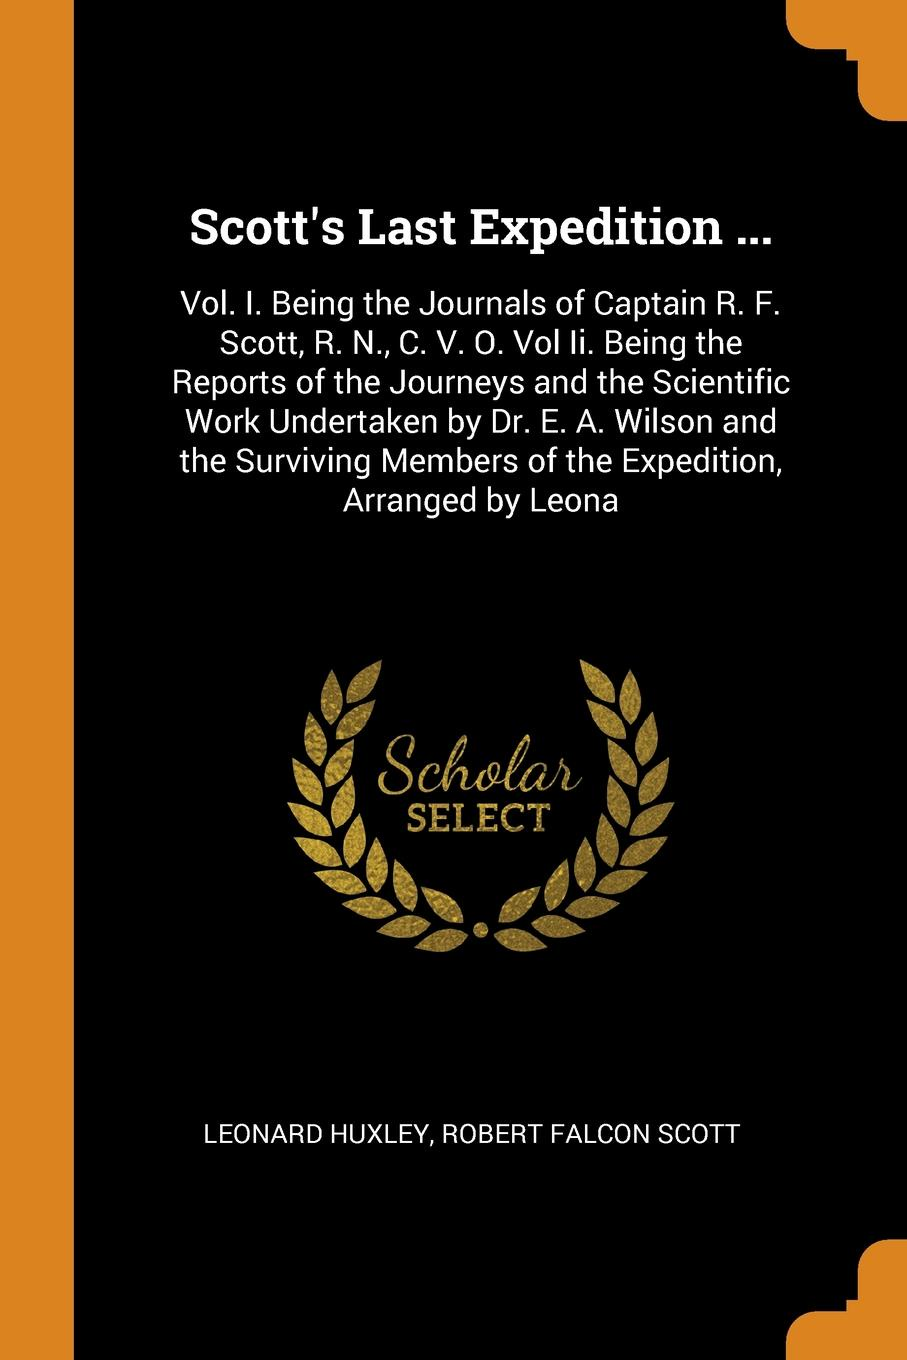 Фото - Leonard Huxley, Robert Falcon Scott Scott's Last Expedition ... Vol. I. Being the Journals of Captain R. F. Scott, R. N., C. V. O. Vol Ii. Being the Reports of the Journeys and the Scientific Work Undertaken by Dr. E. A. Wilson and the Surviving Members of the Expedition, Arranged b... mary wilson anne the c e o and the secret heiress